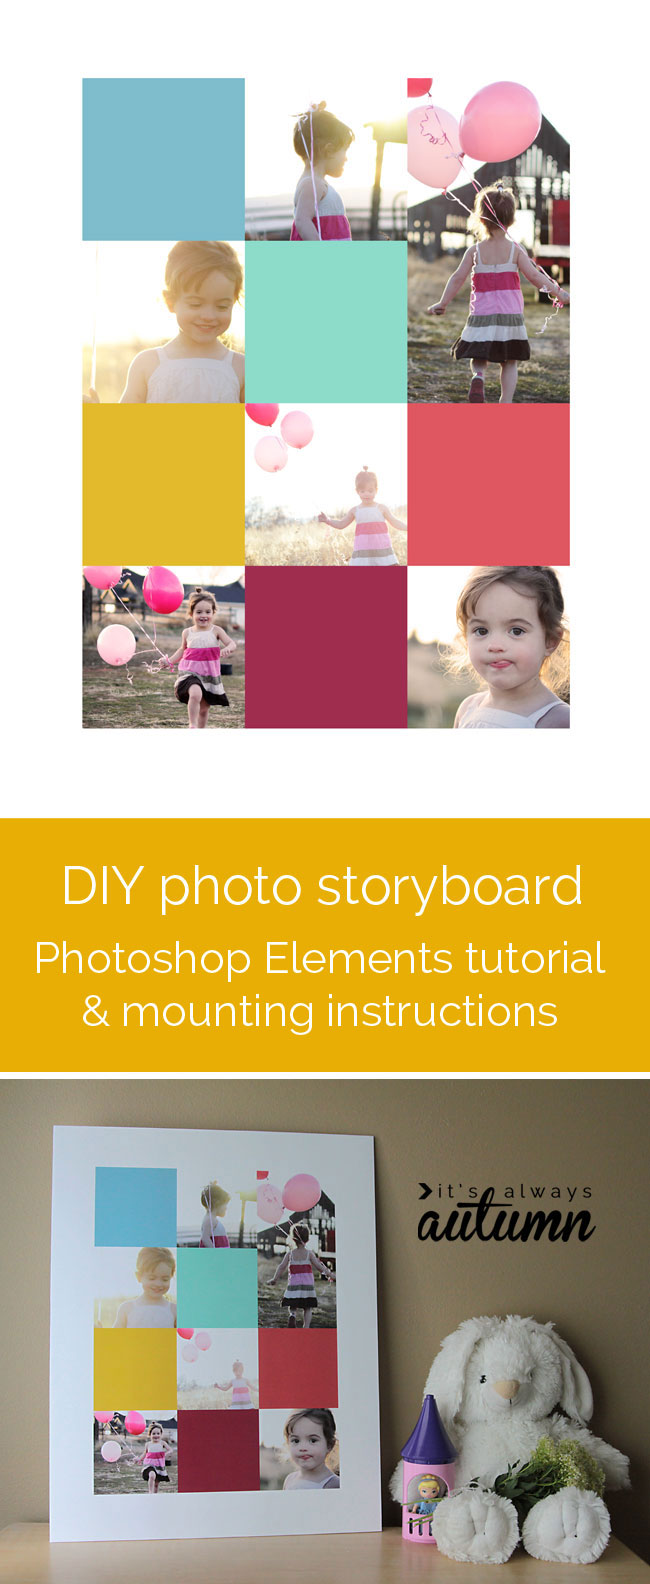 how to create a storyboard collage in Photoshop Elements and mount on foam core (cheap!)